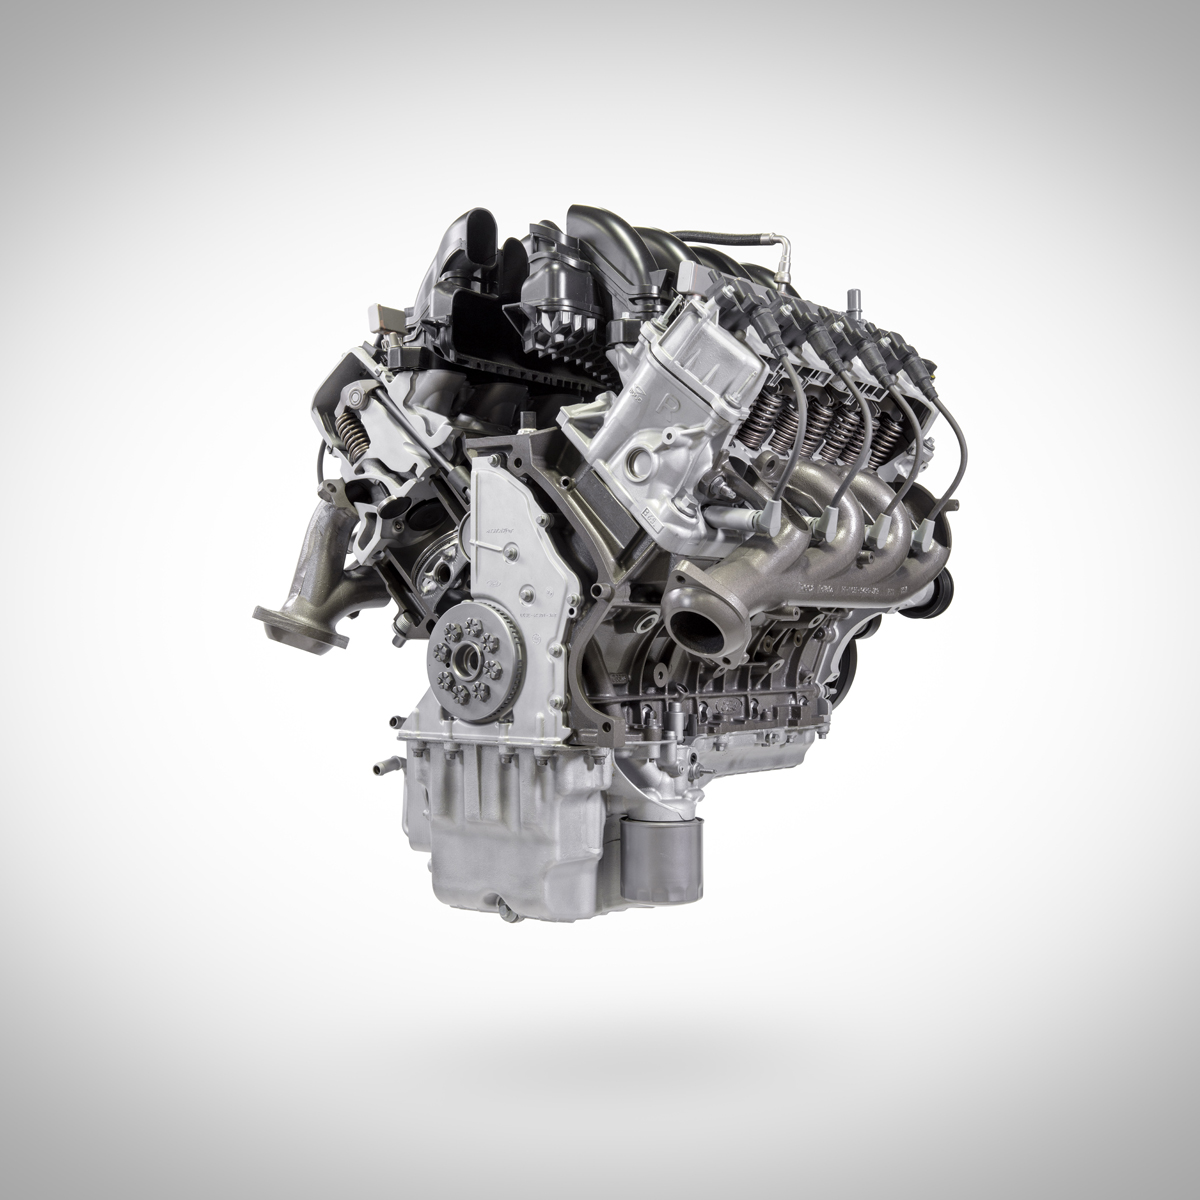 7.3L V8 Ford crate engine from Ford Performance cut away lower front